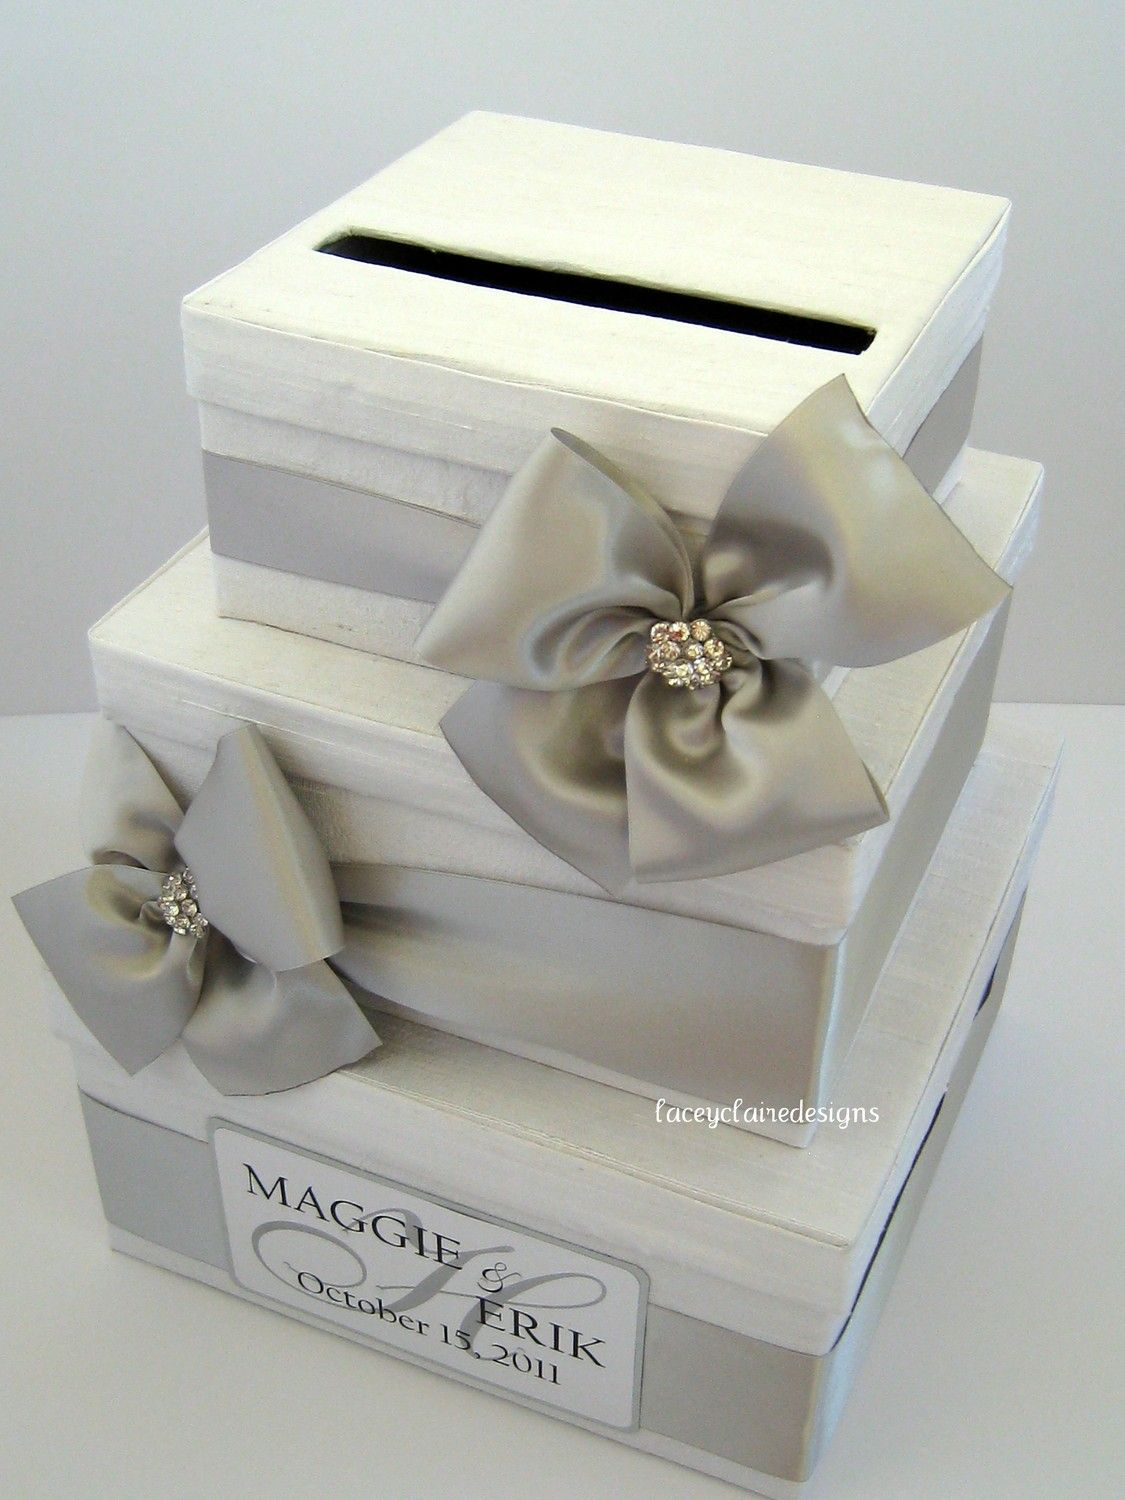 78 images about Diy moneybox wedding party etc – Gift Card Box Wedding